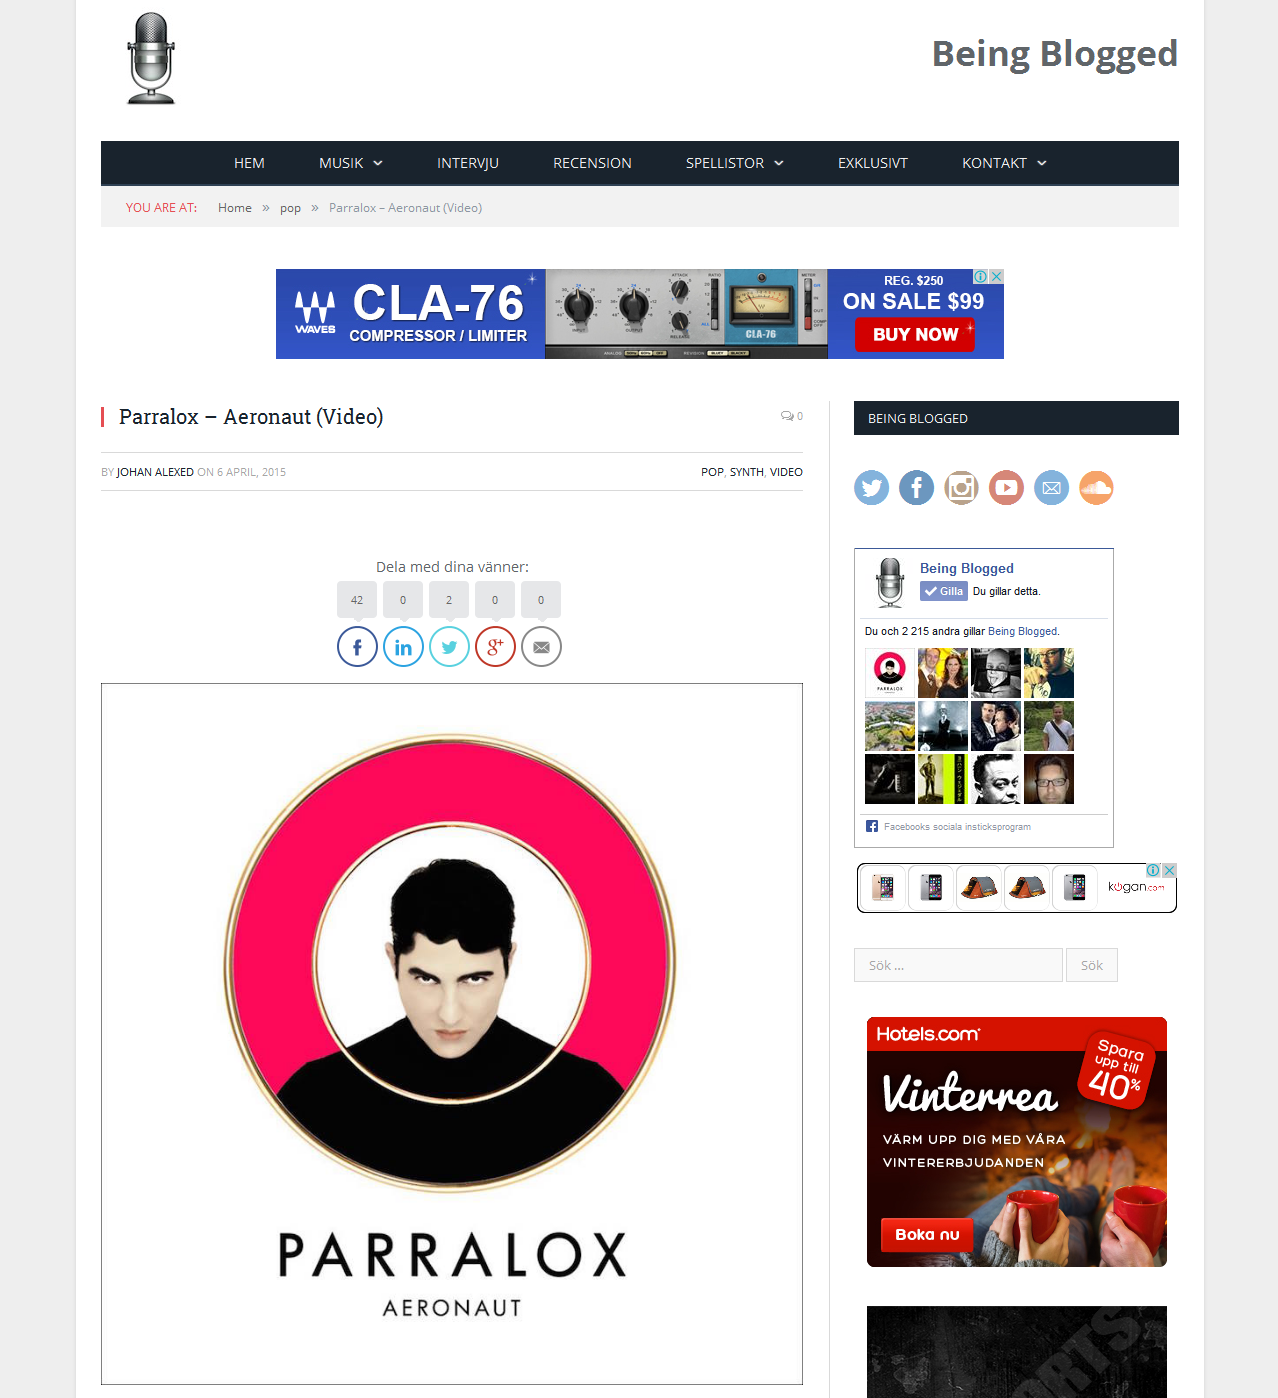 Being Blogged (Sweden) article on Aeronaut